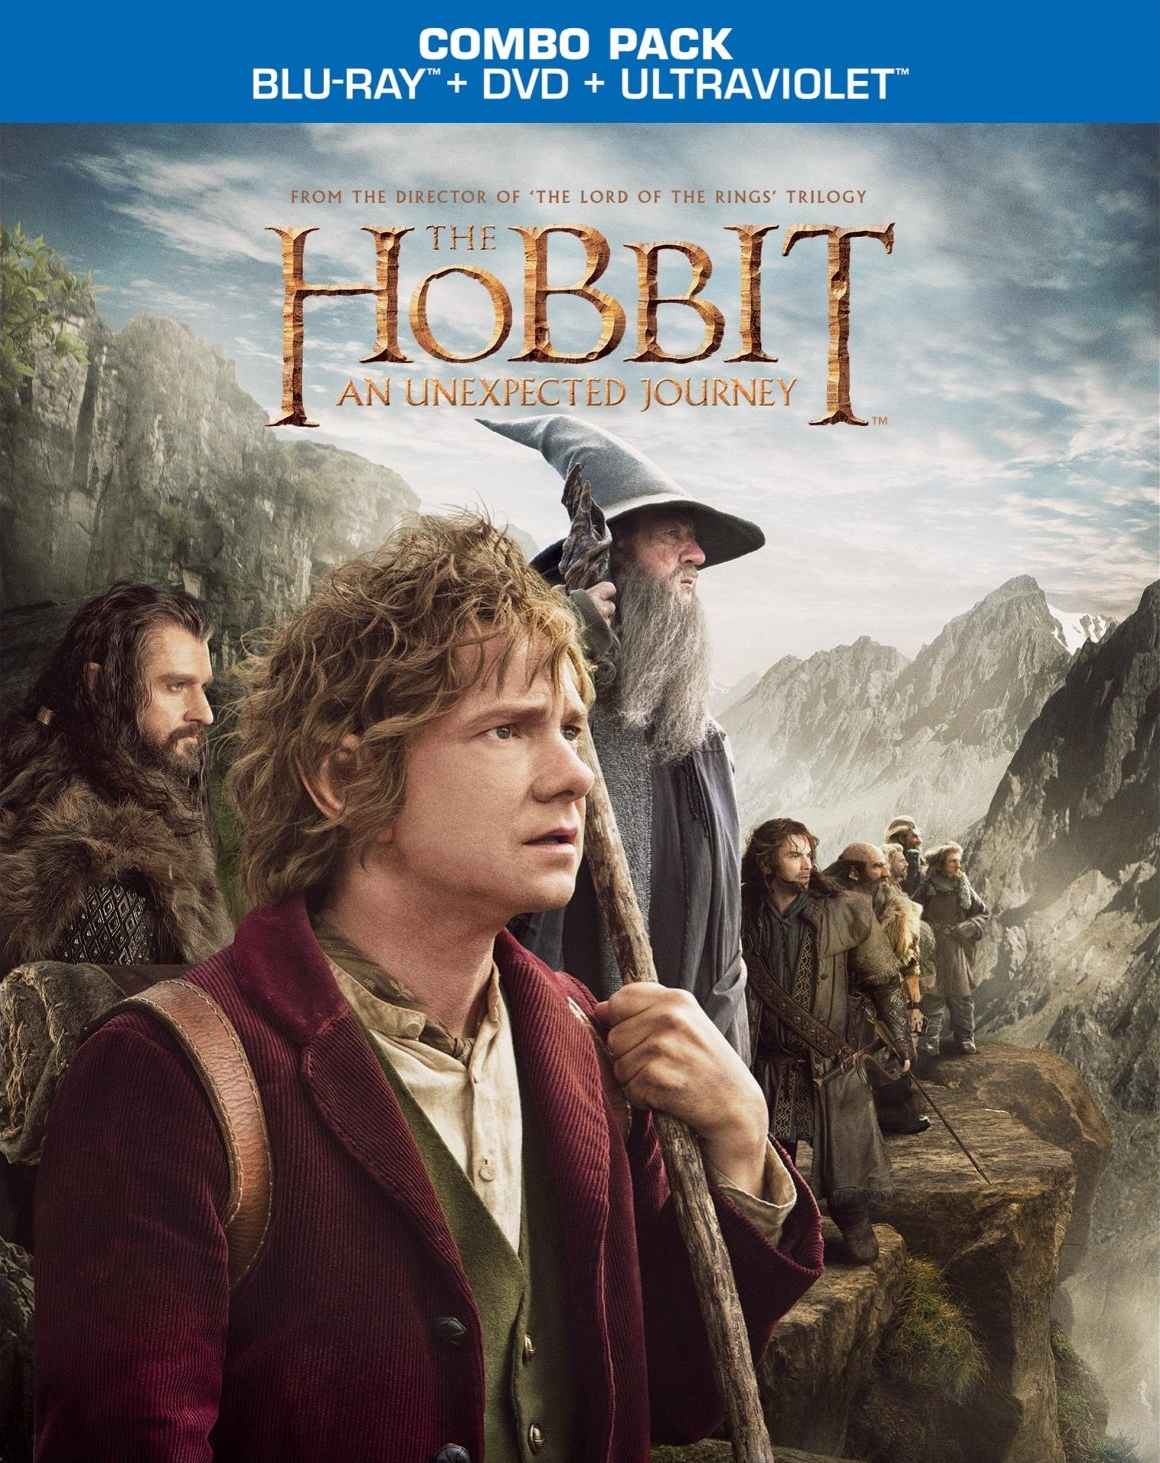 The Hobbit  An Unexpected Journey Blu-ray Combo Pack GiveawayThe Hobbit An Unexpected Journey Dvd